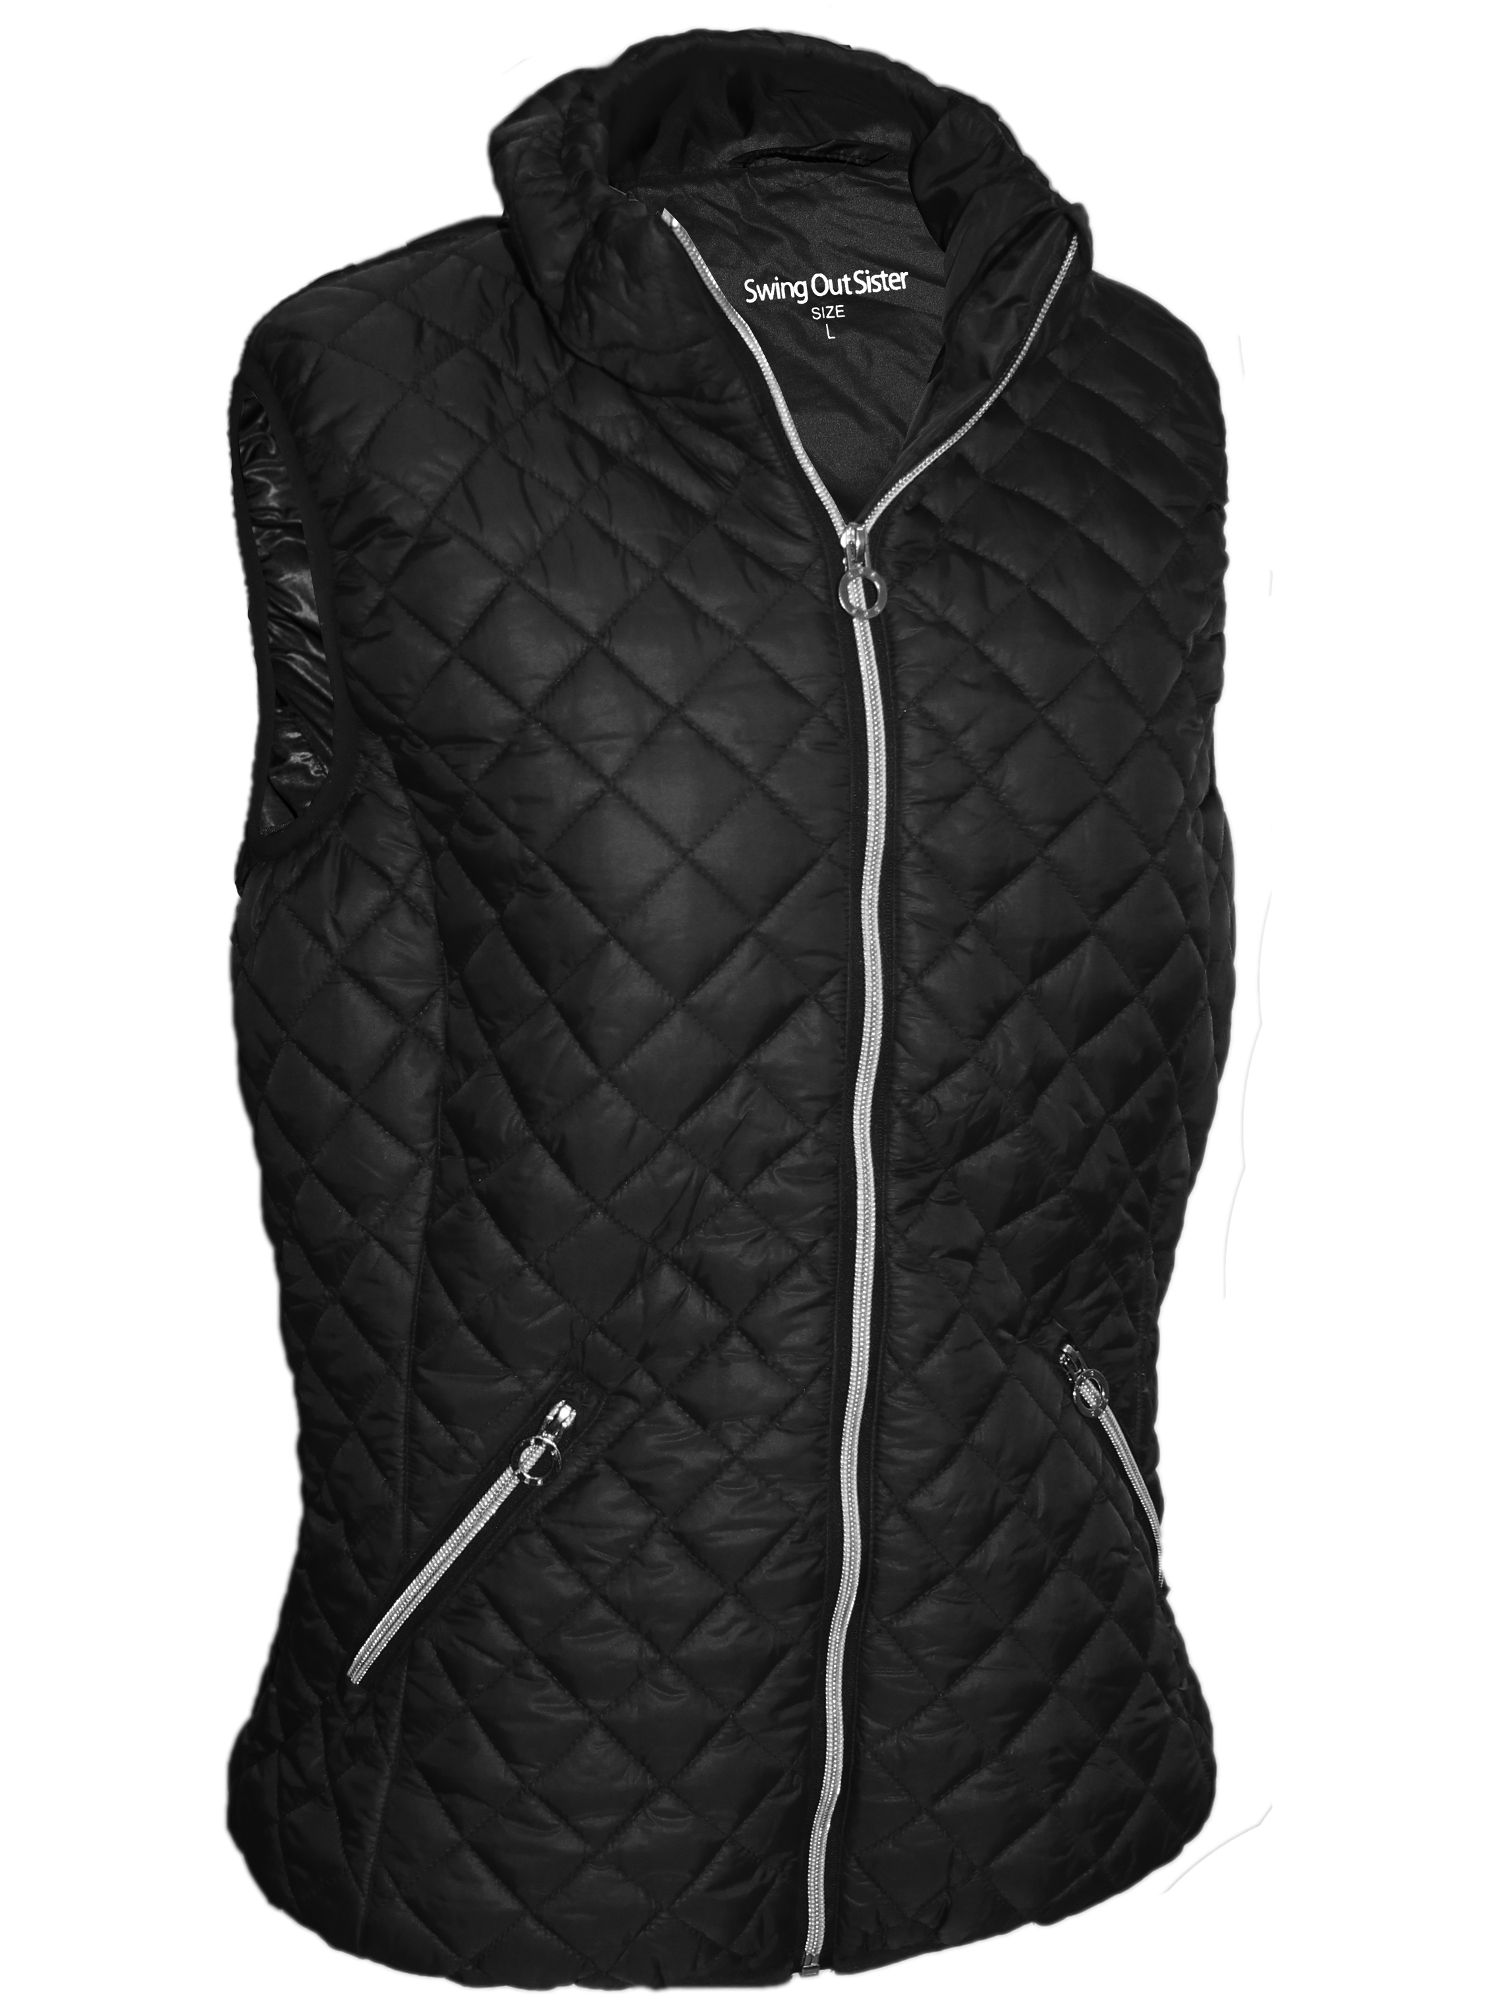 Swing Out Sister Swing Out Sister Harley Gilet, Black